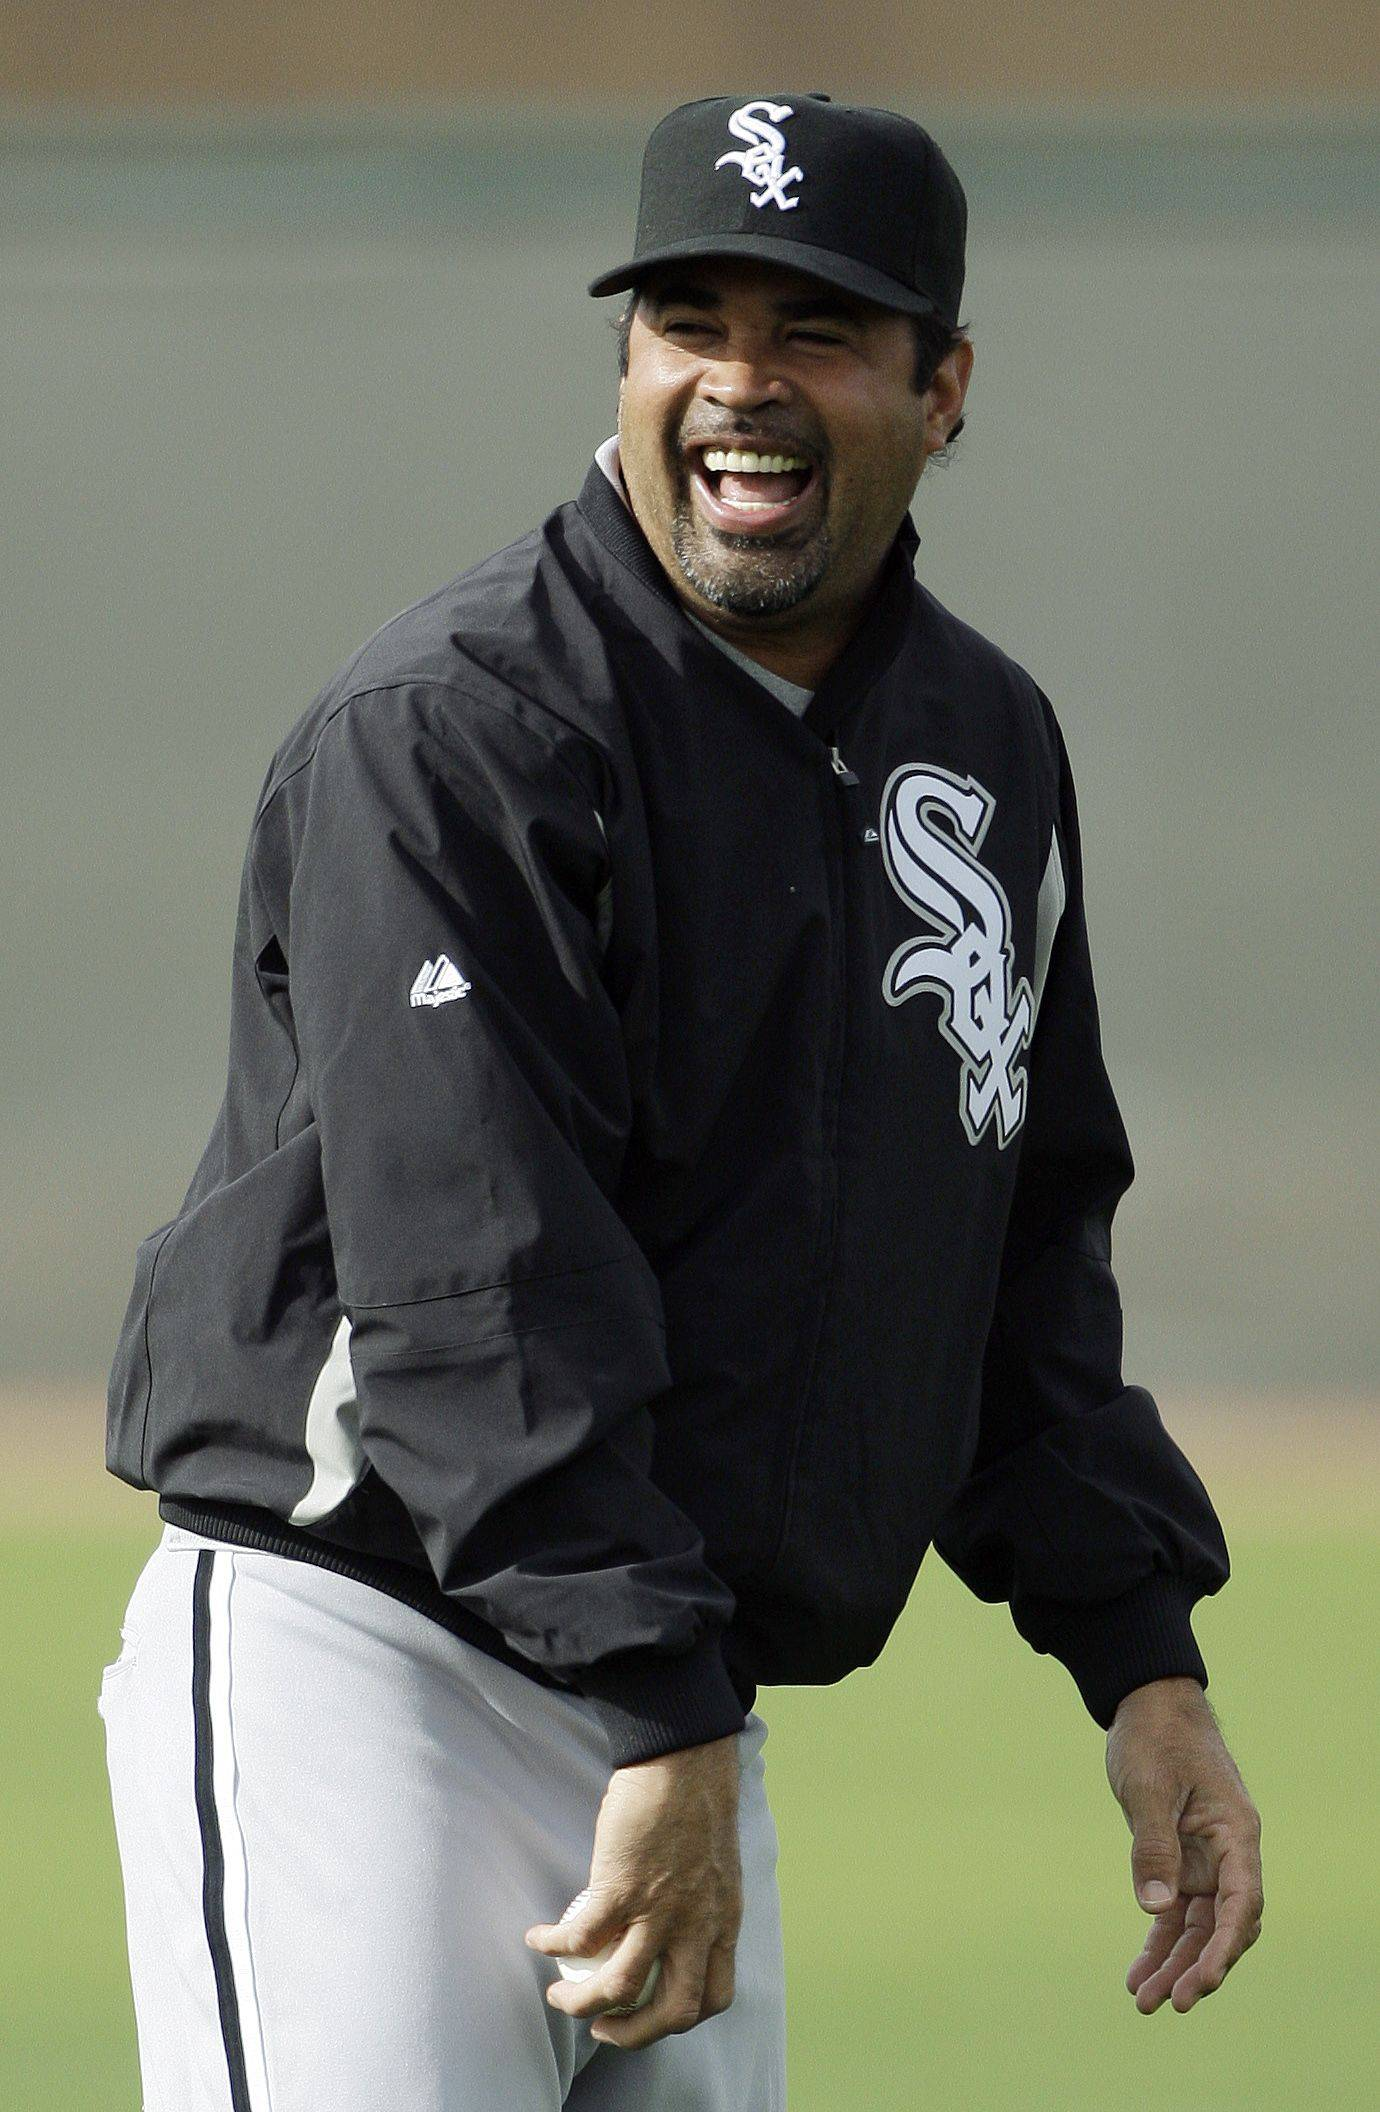 White Sox manager Ozzie Guillen could be headed to Florida to manage the Marlins next season. Or he could be back on the South Side.